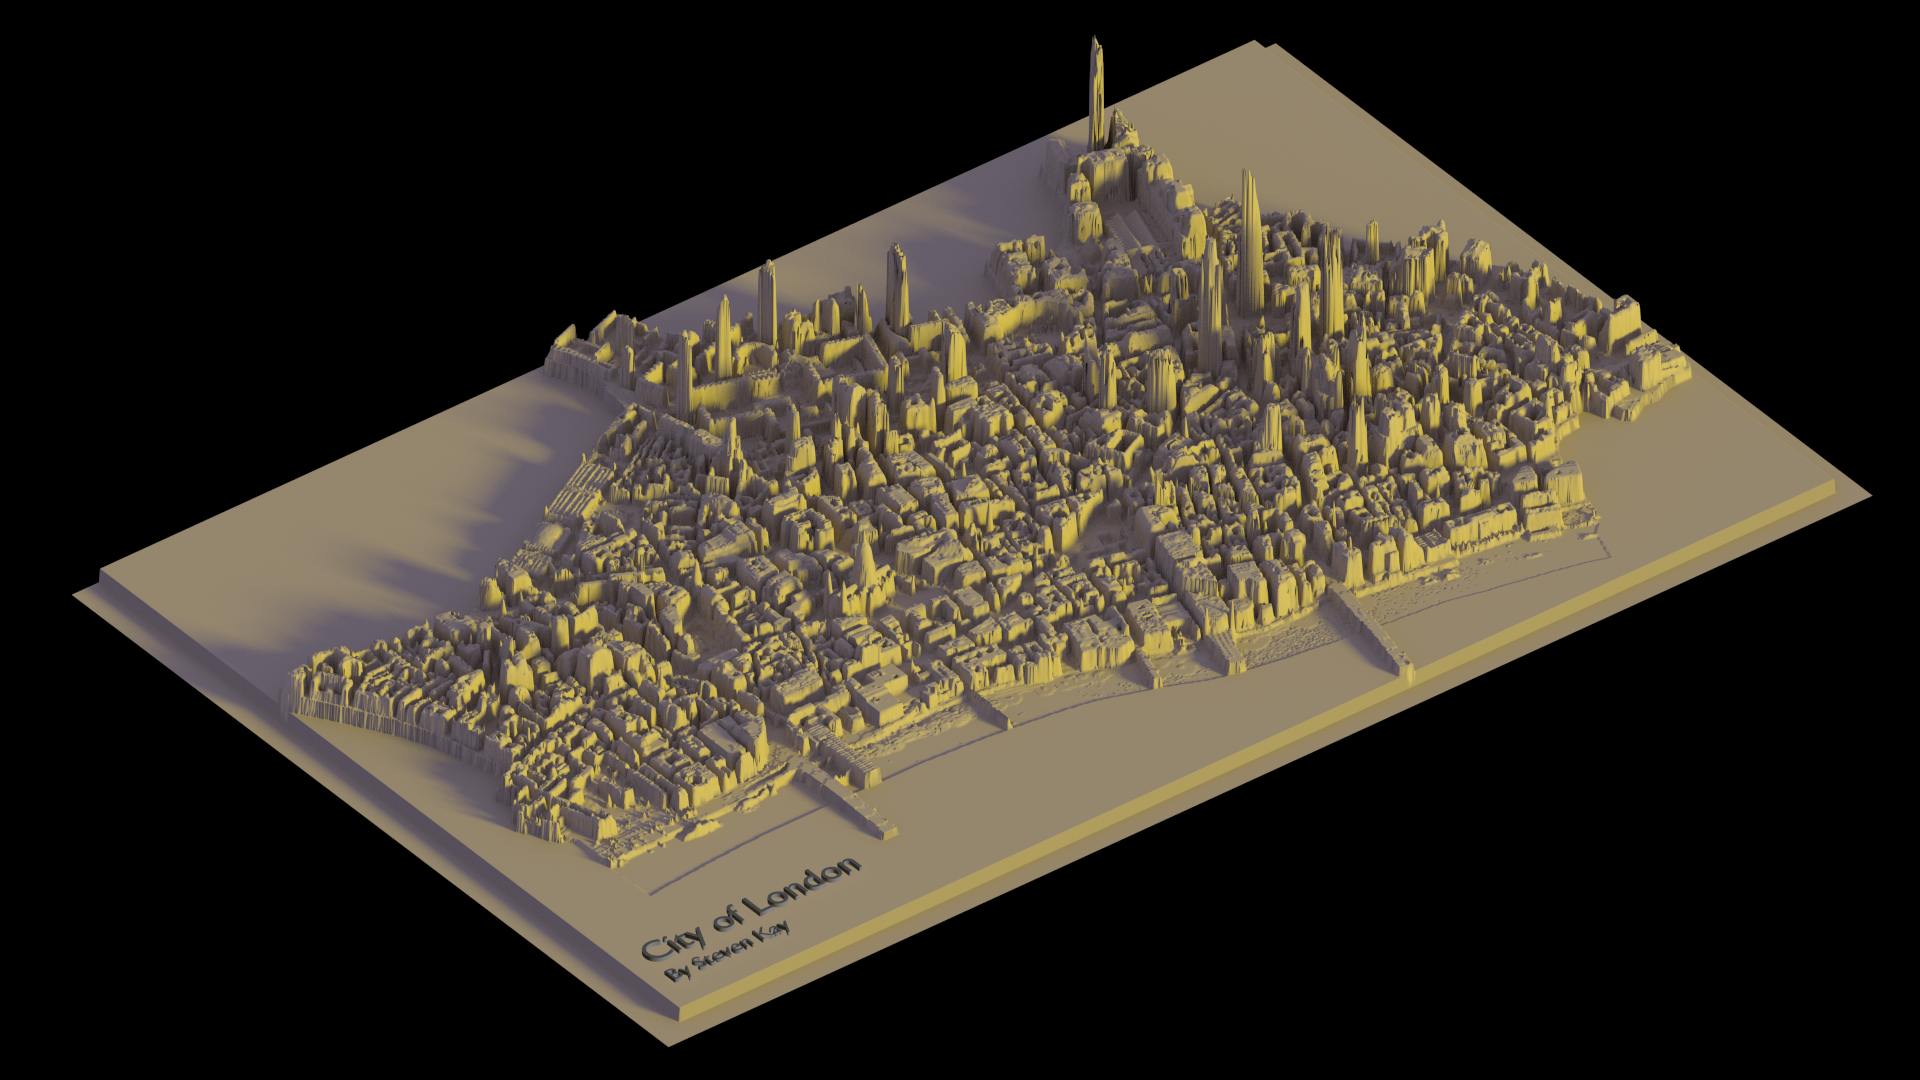 The City of London modelled in Blender Using the newly released